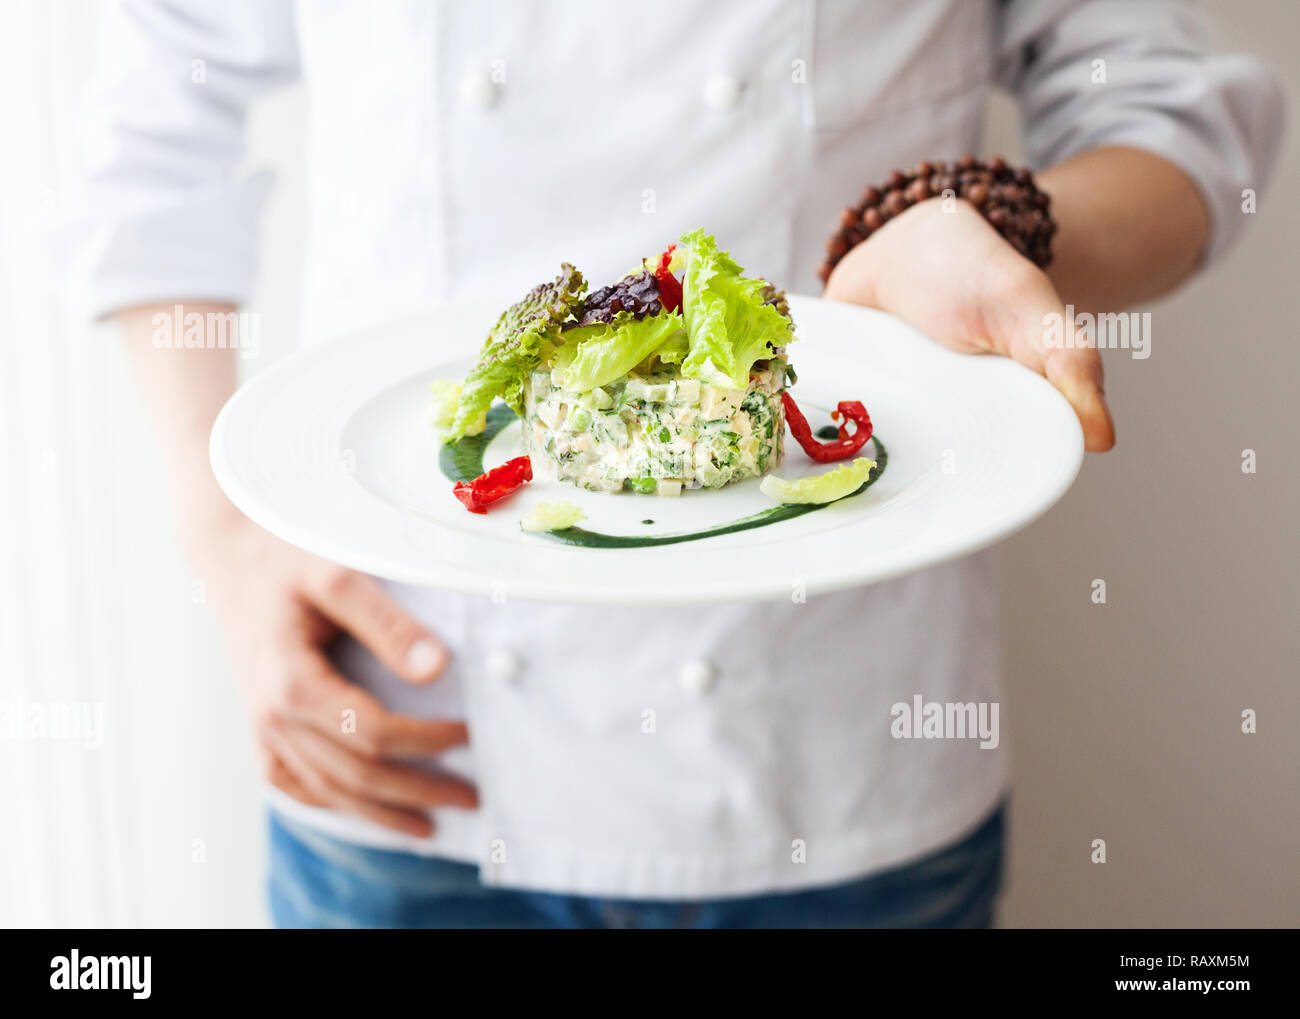 Chef holding Healthy Raw vegan salad in the white plate in restaurant - Stock Image